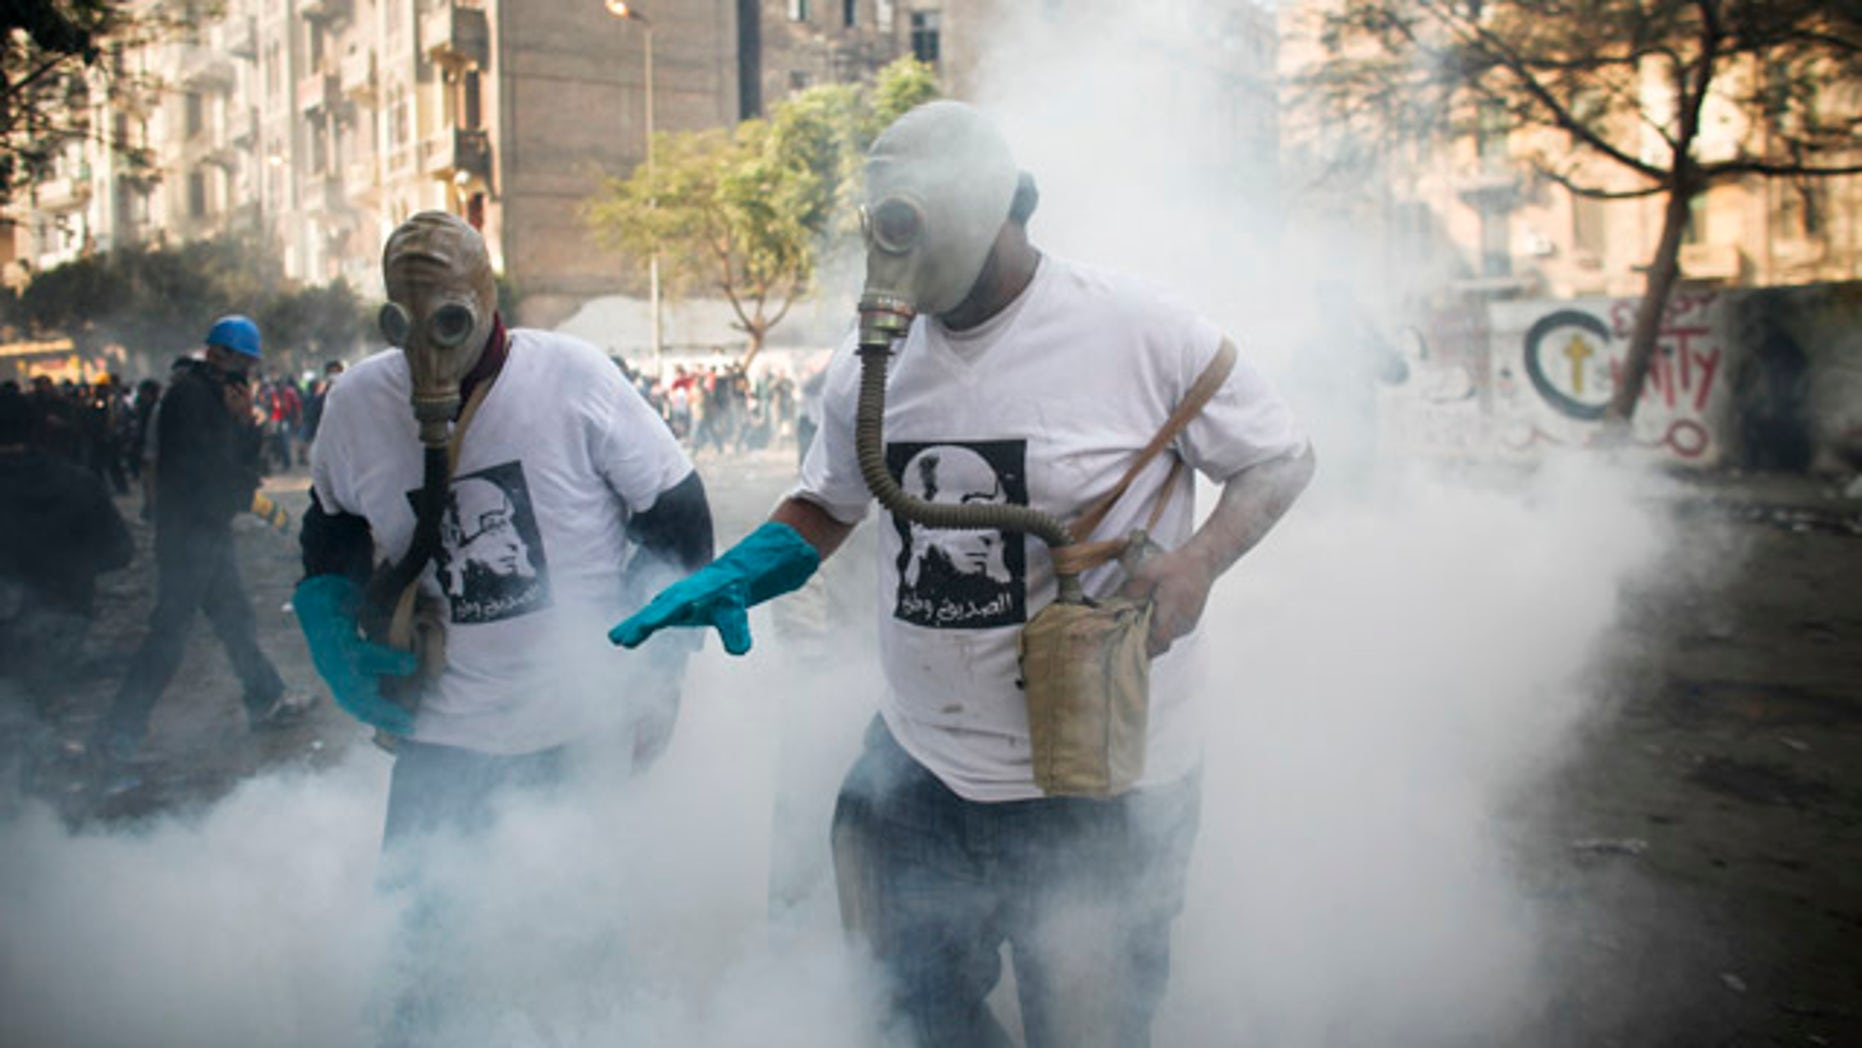 Nov. 23. 2011: Protesters attempt to get rid of a tear gas canister during clashes with Egyptian riot police, not pictured, near Tahrir square in Cairo, Egypt.